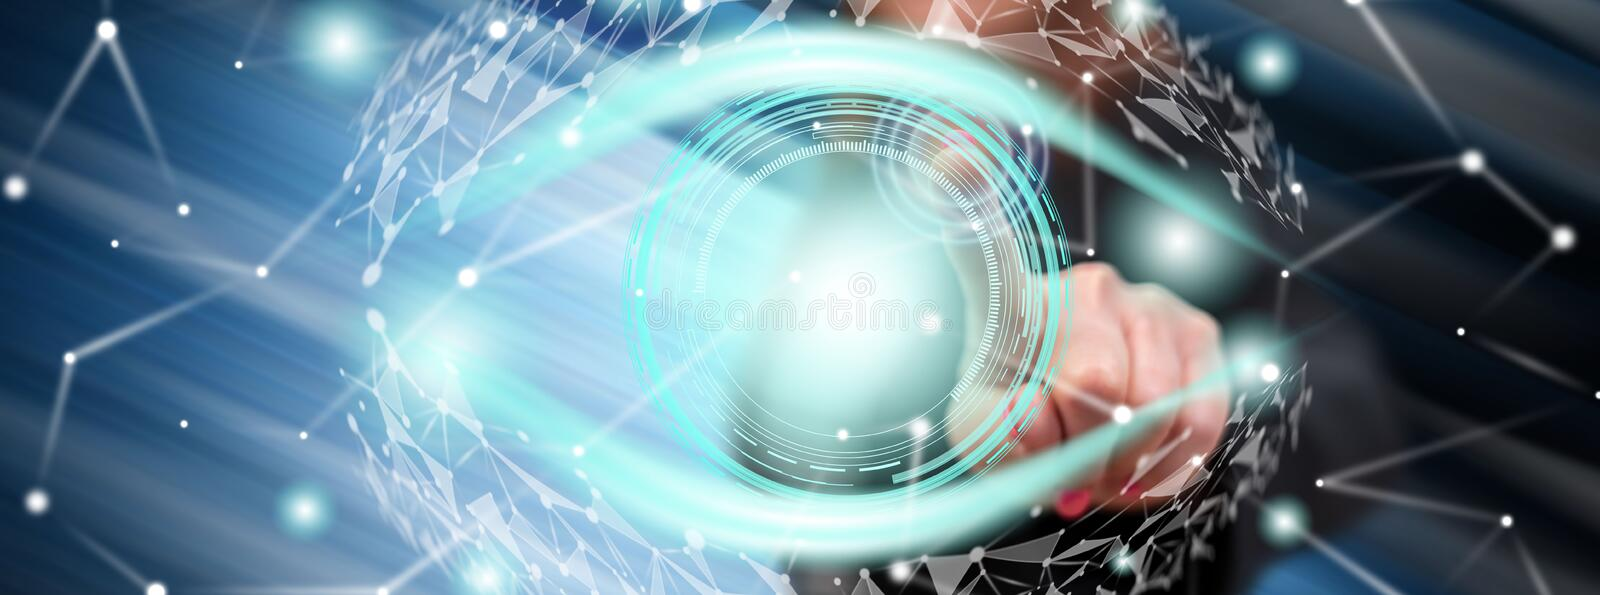 Woman touching a digital eye concept royalty free stock images